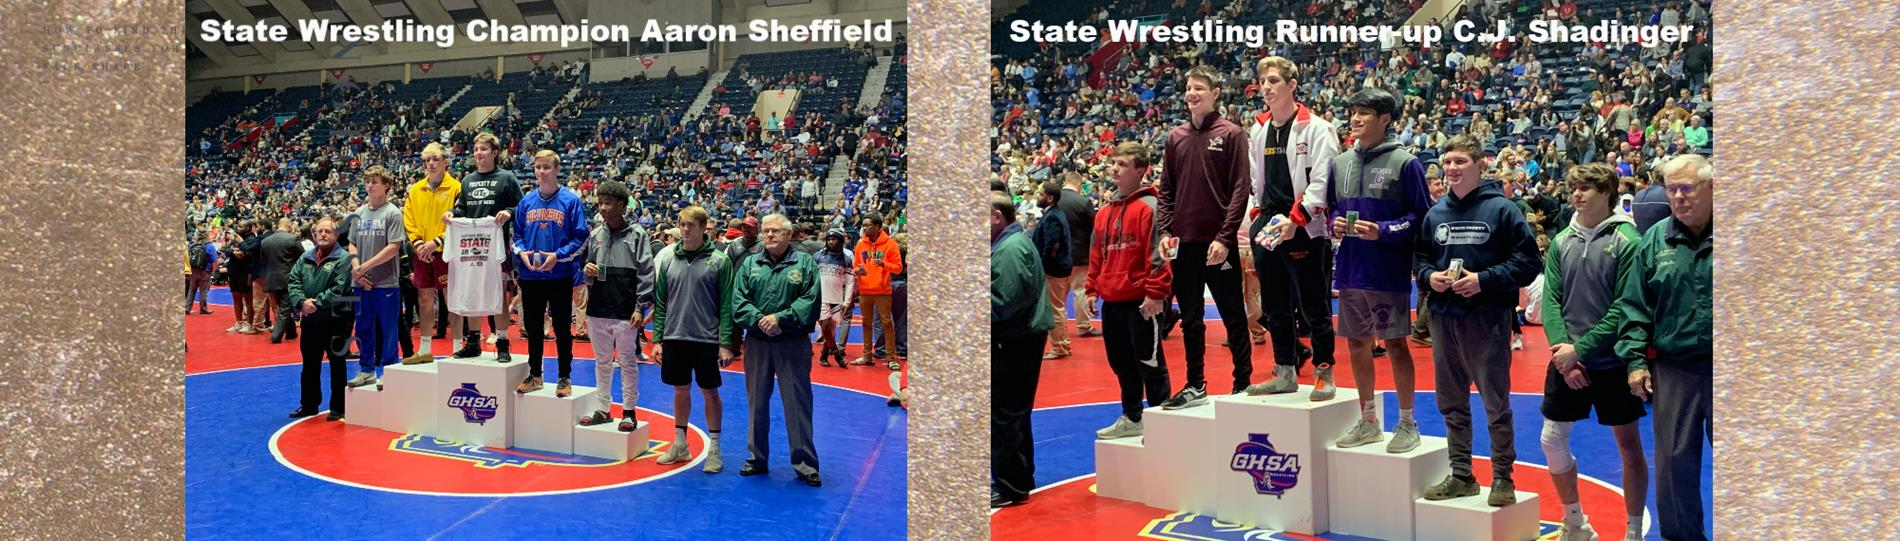 State Wrestling Champions